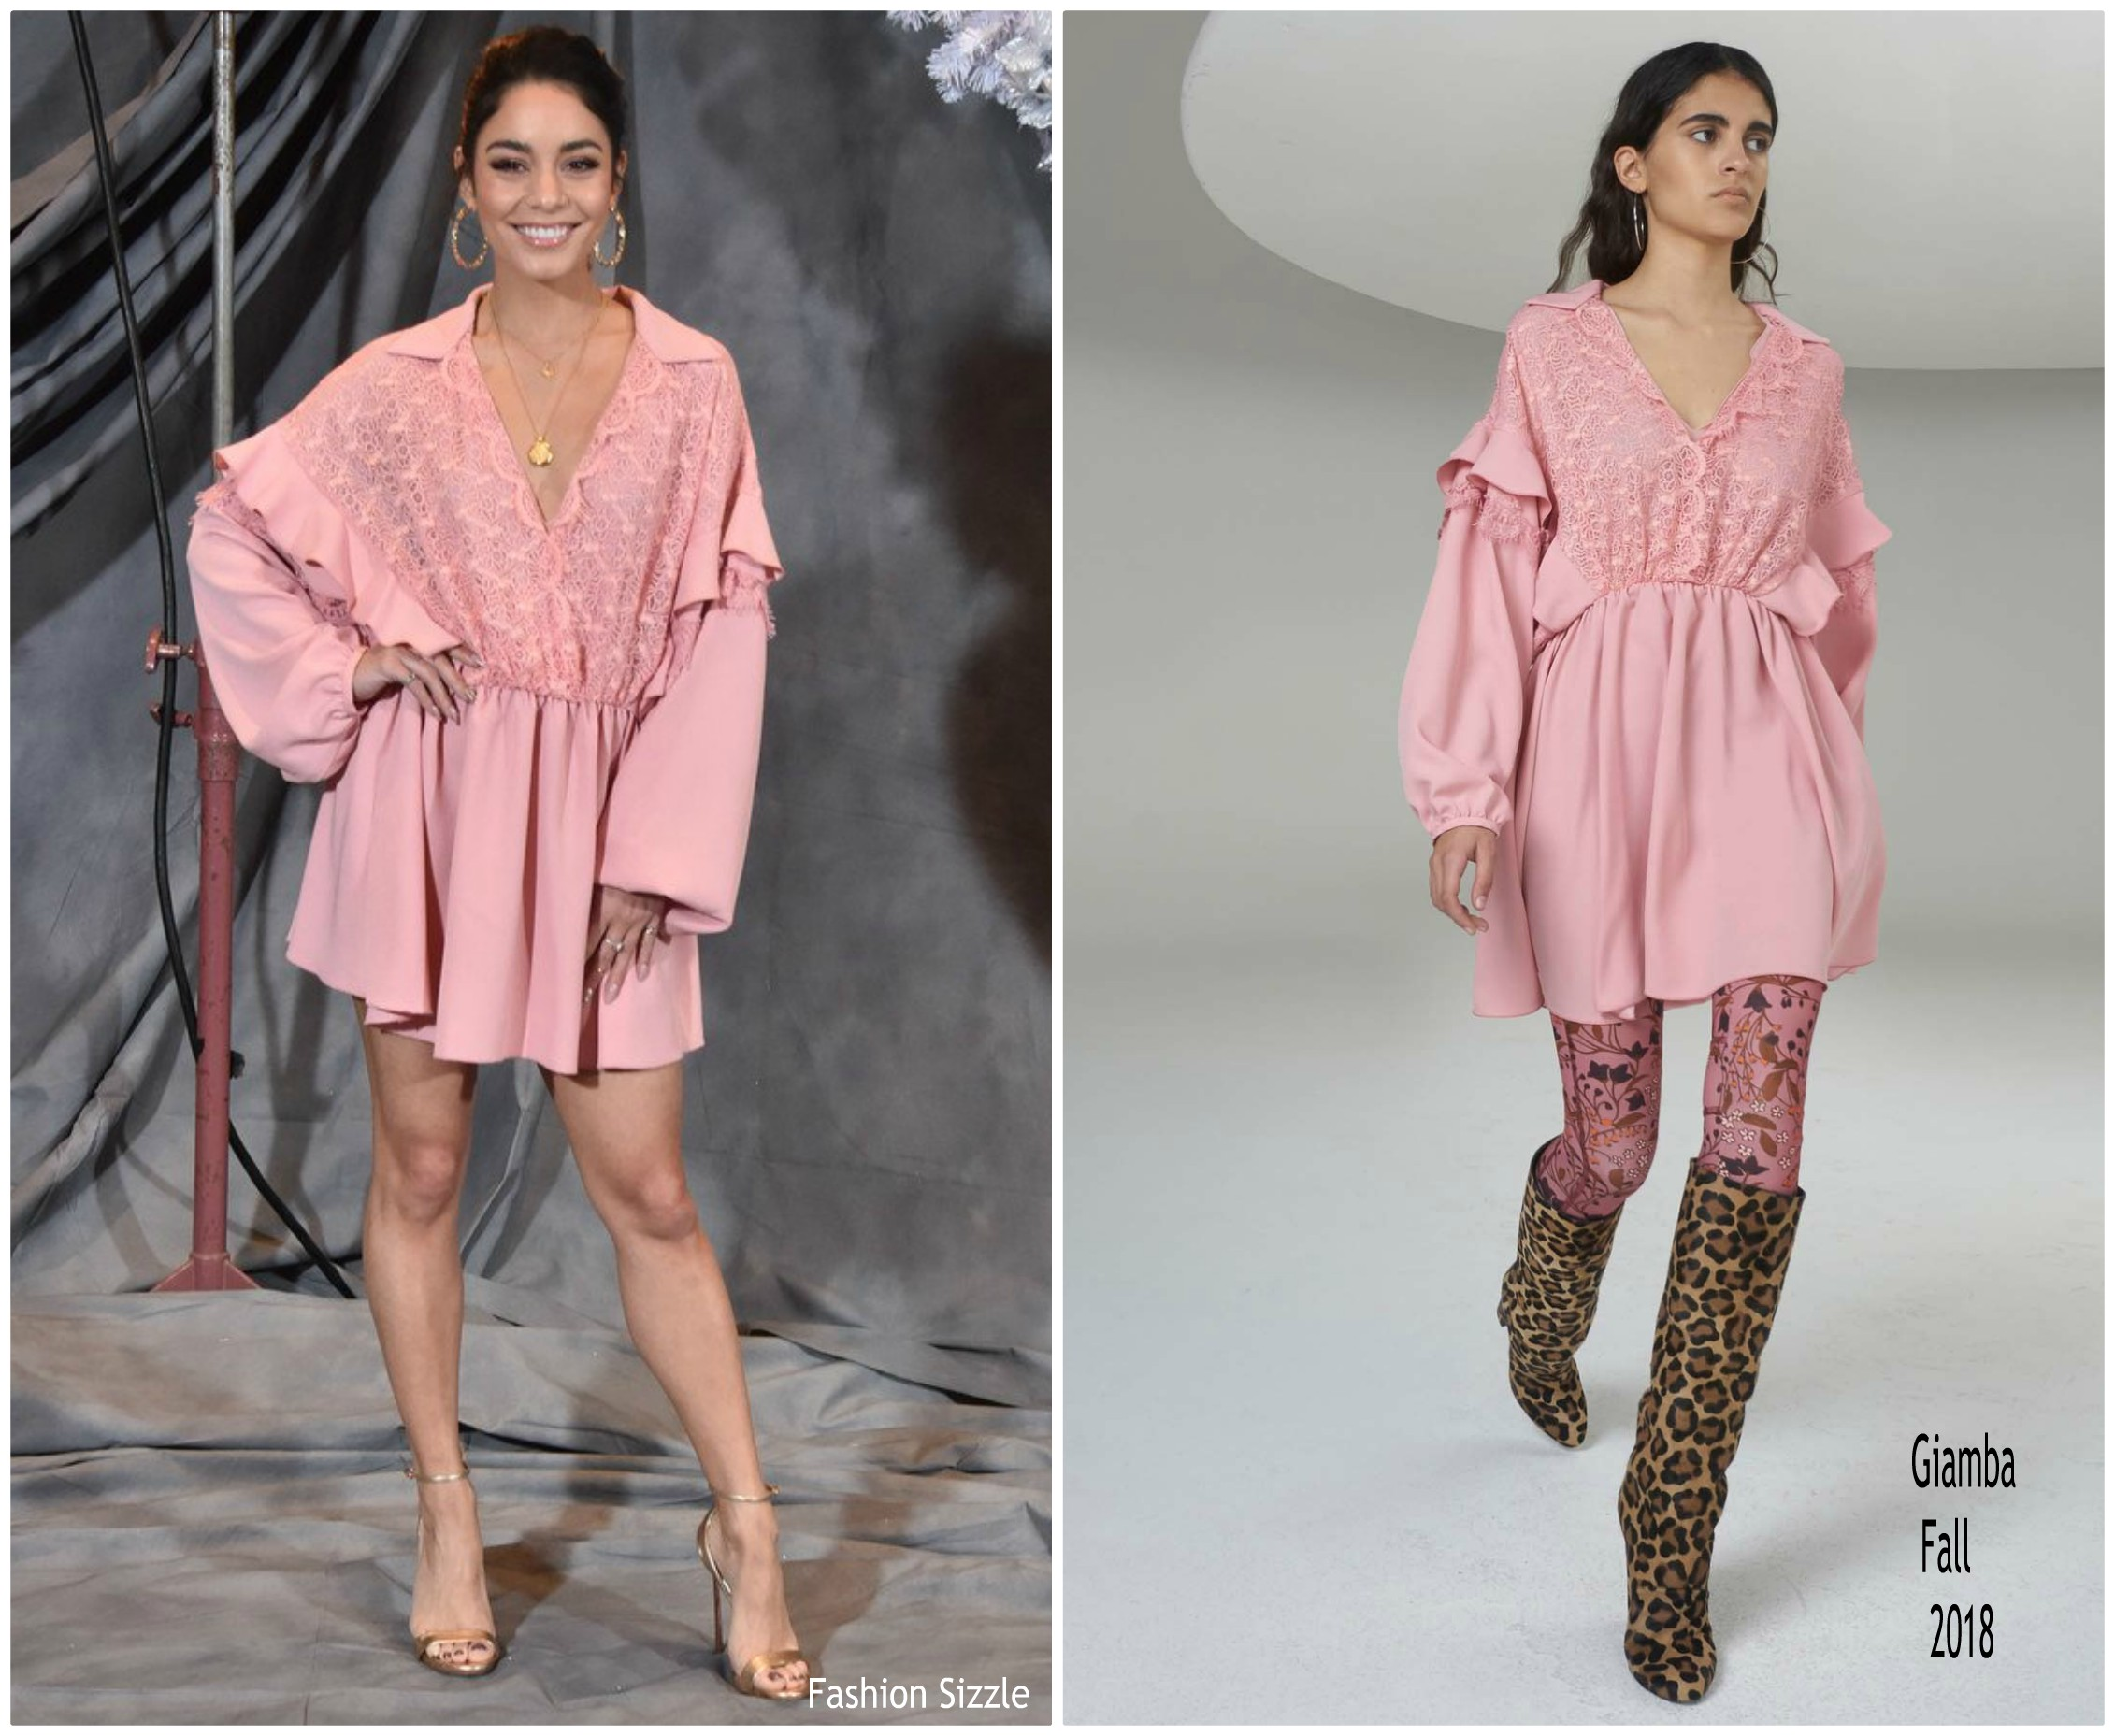 vanessa-hudgens-in-giamba-second-act-la-photocall